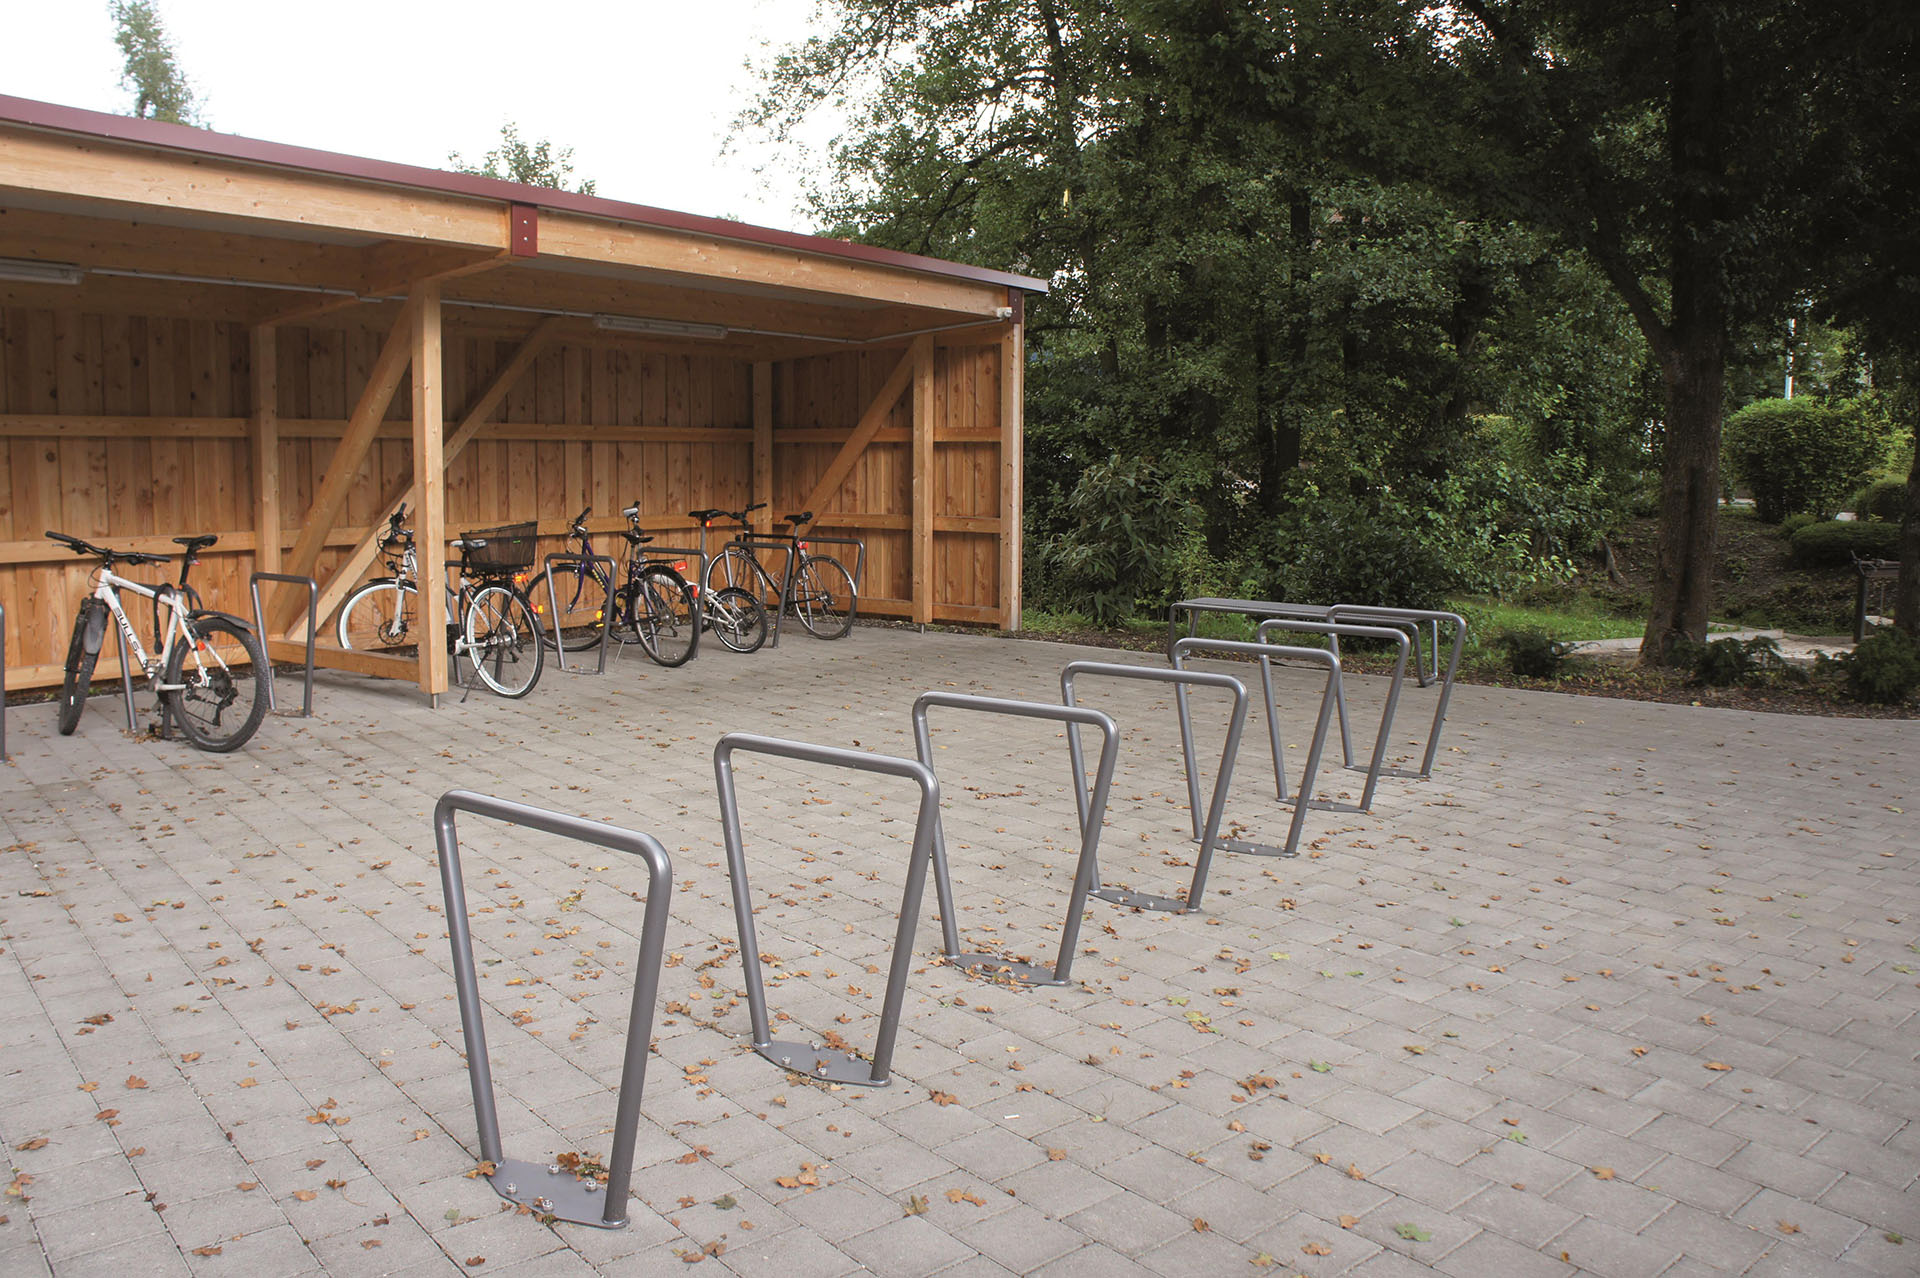 viola, metal cycle stands, in a row